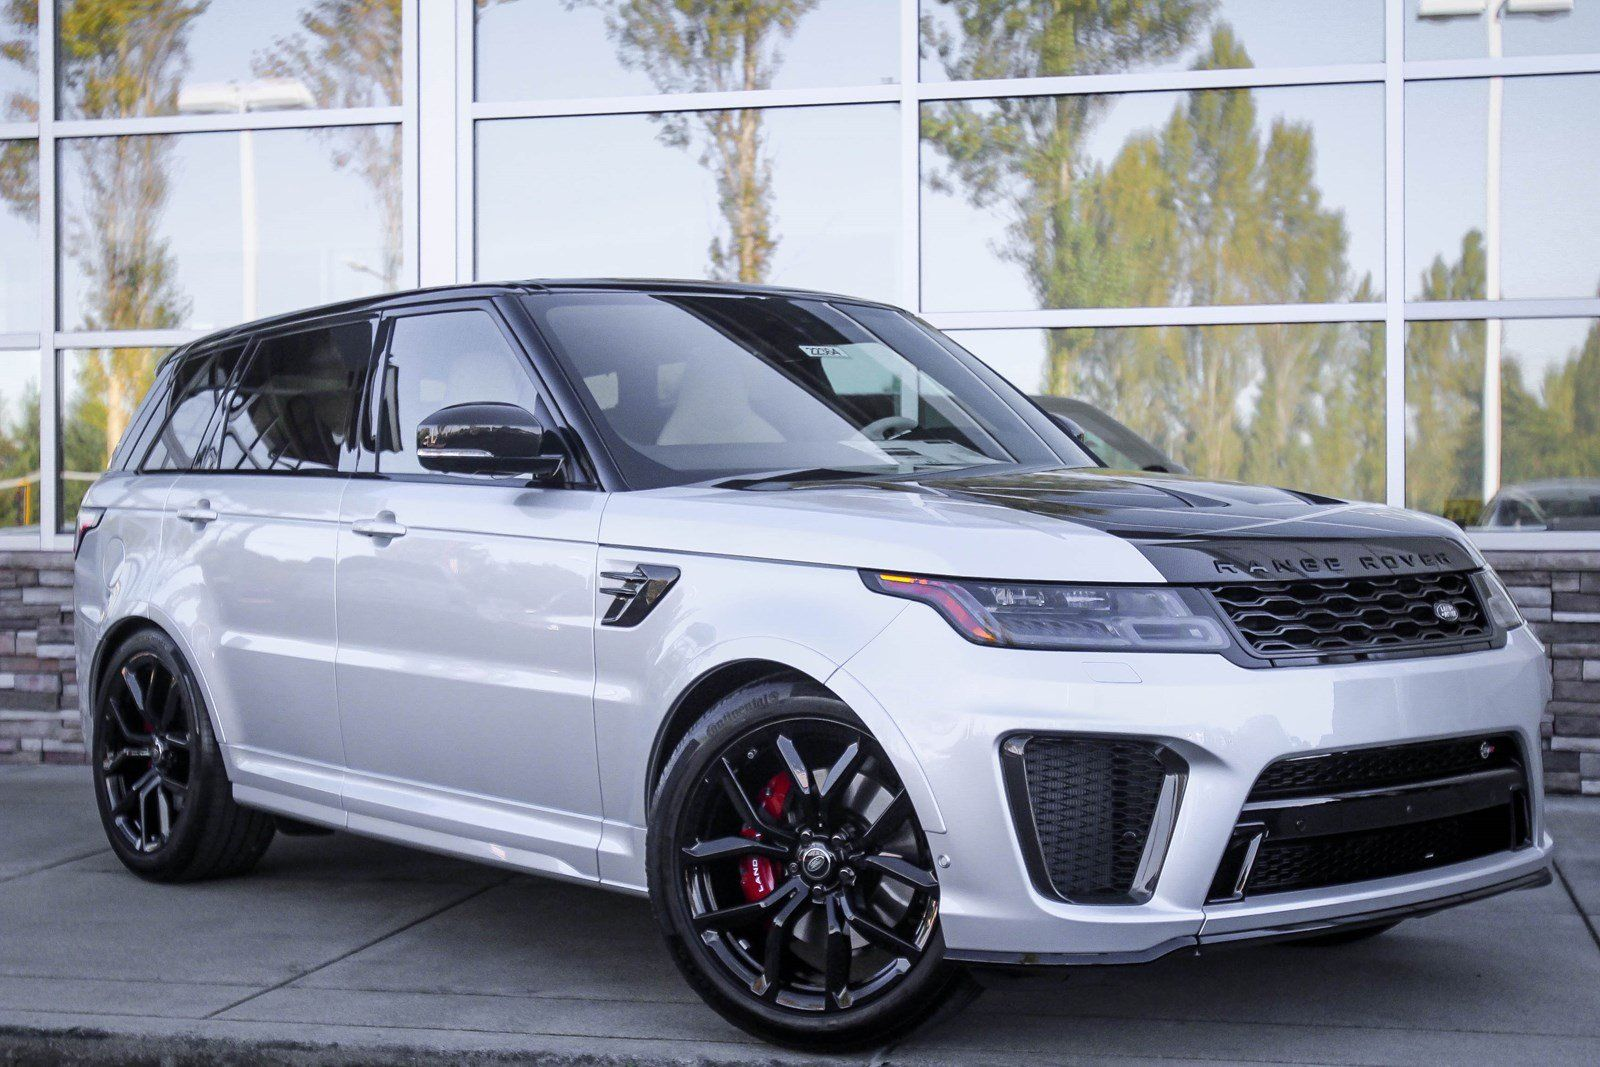 Land Rover Bellevue >> 90 New Cars Suvs In Stock Redmond Joyryd S Range Rover Svr